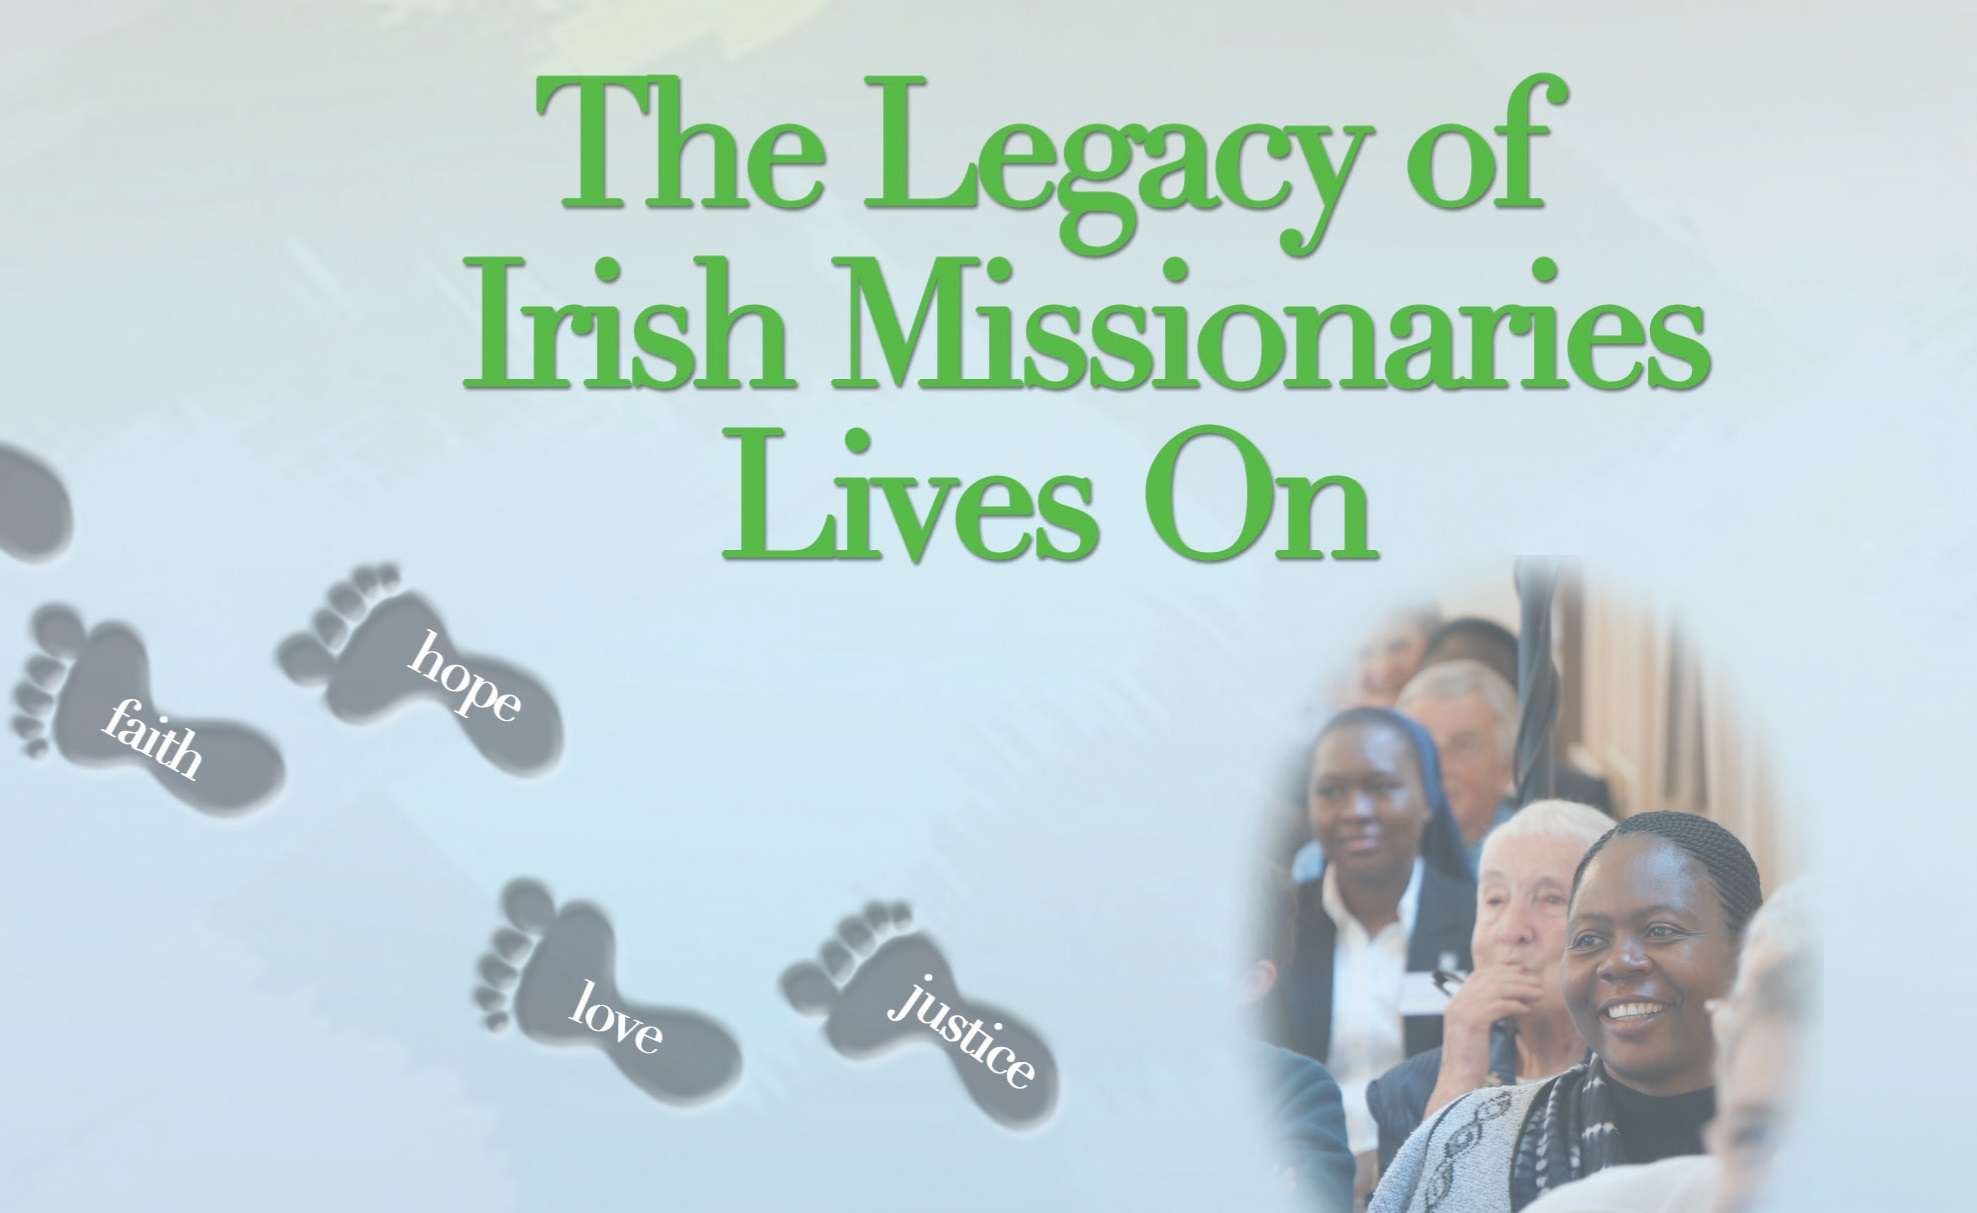 New book launched today on the legacy of Irish missionaries -  Catholicireland.netCatholicireland.net